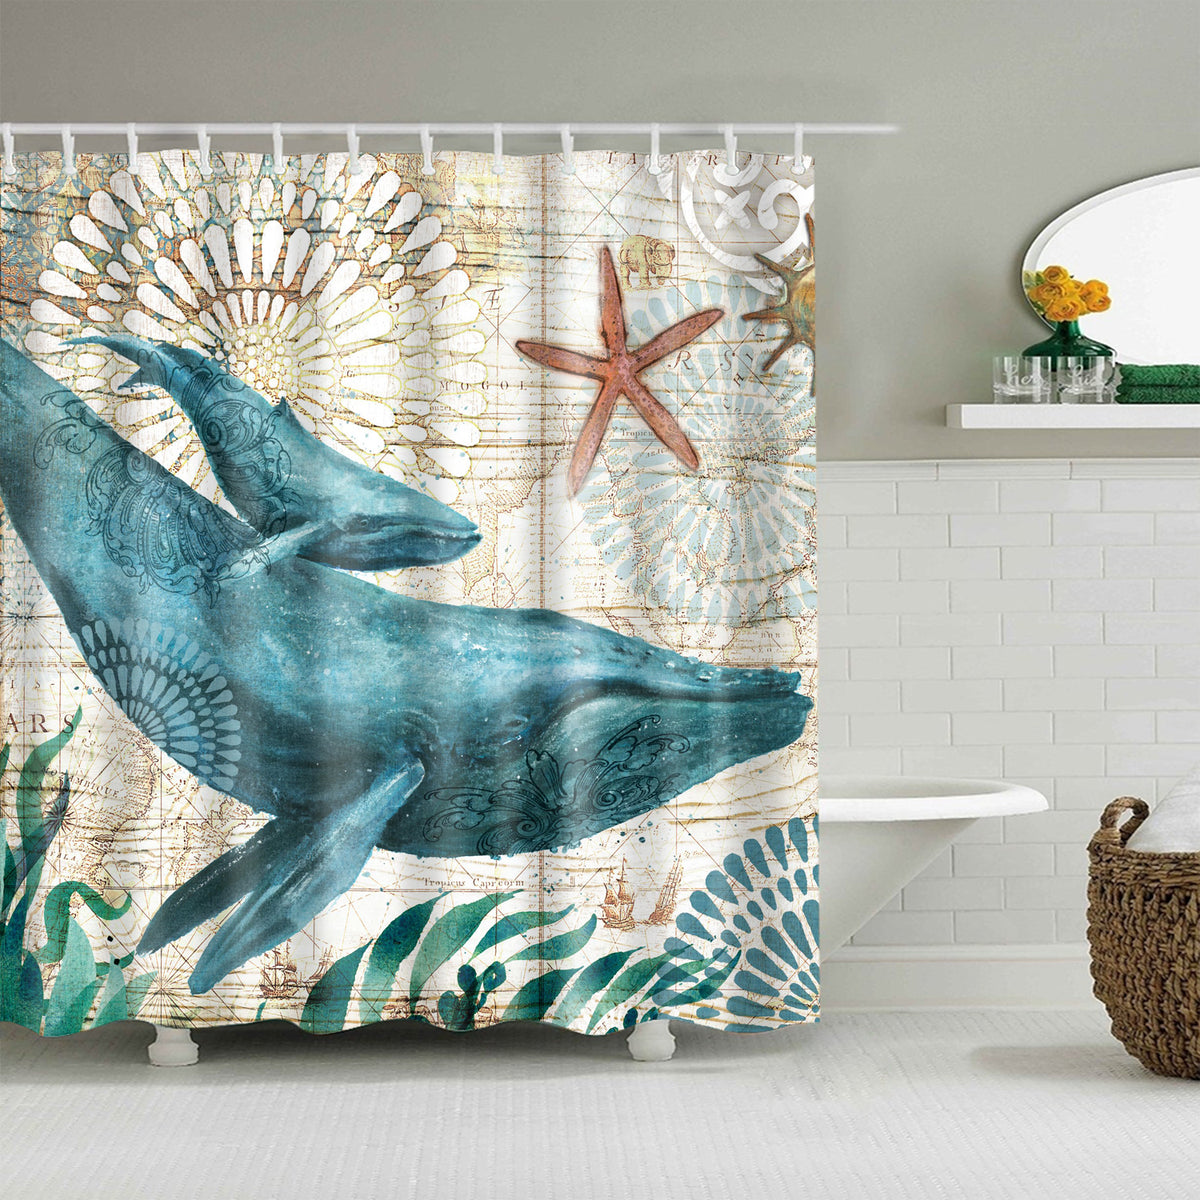 Marine Underwater Life Green Whale Shower Curtain